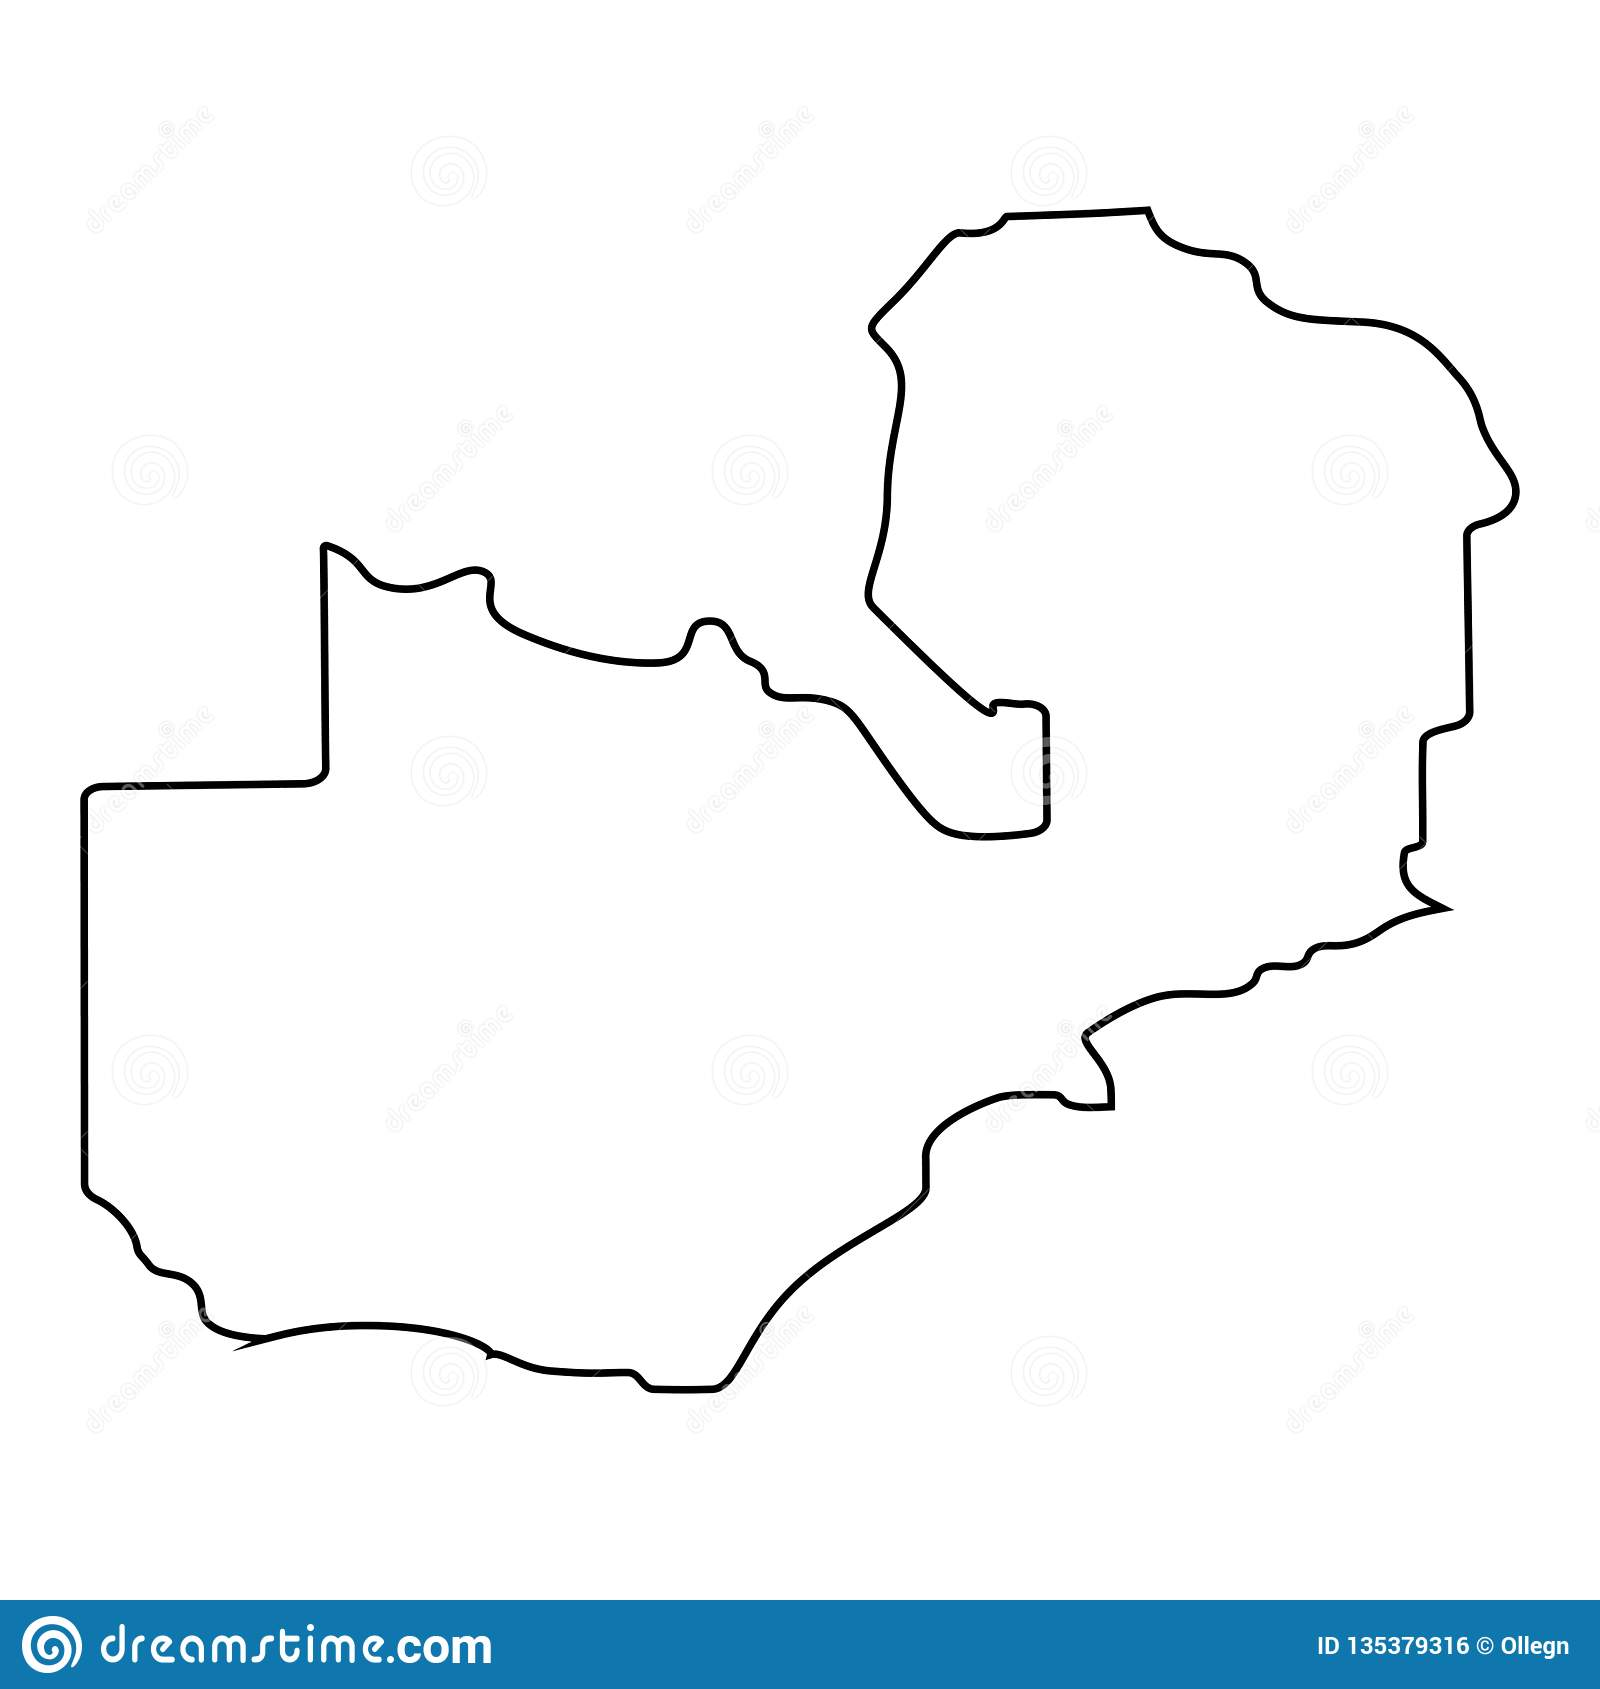 Zambian Map Vector.Map Of Zambia Outline Stock Illustration Illustration Of